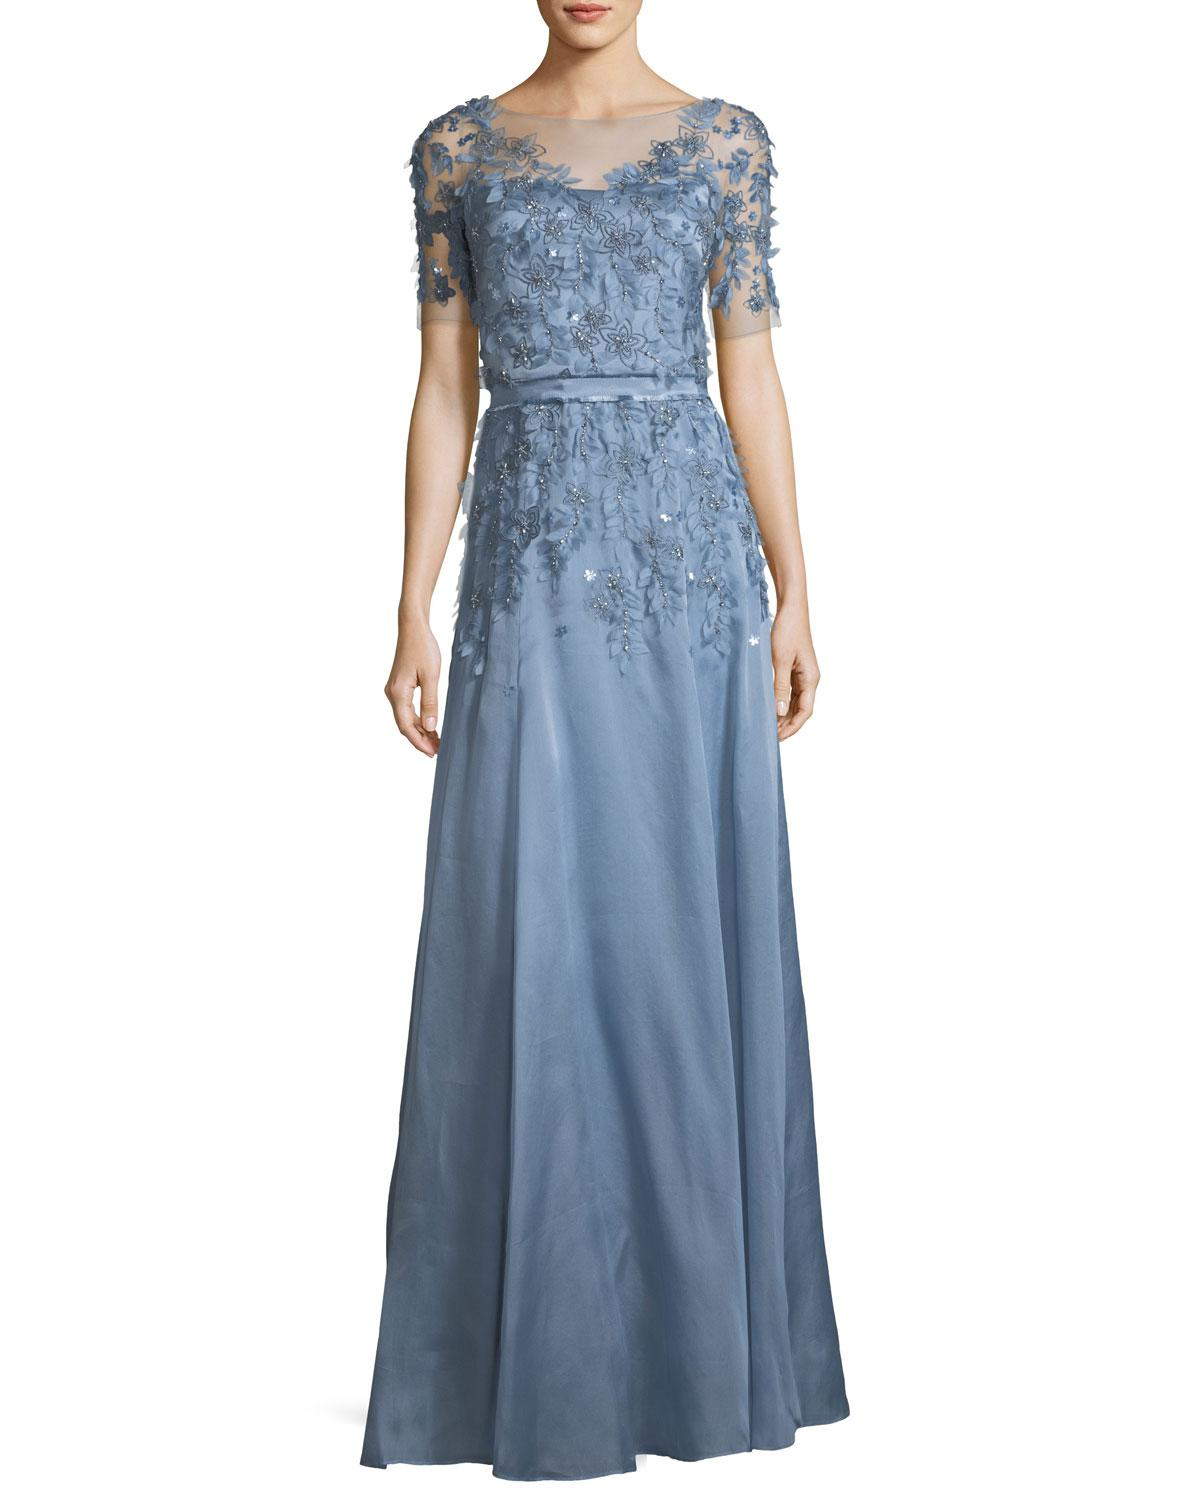 Lyst - Jenny Packham Short-sleeve 3-d Floral Embroidered Evening ...